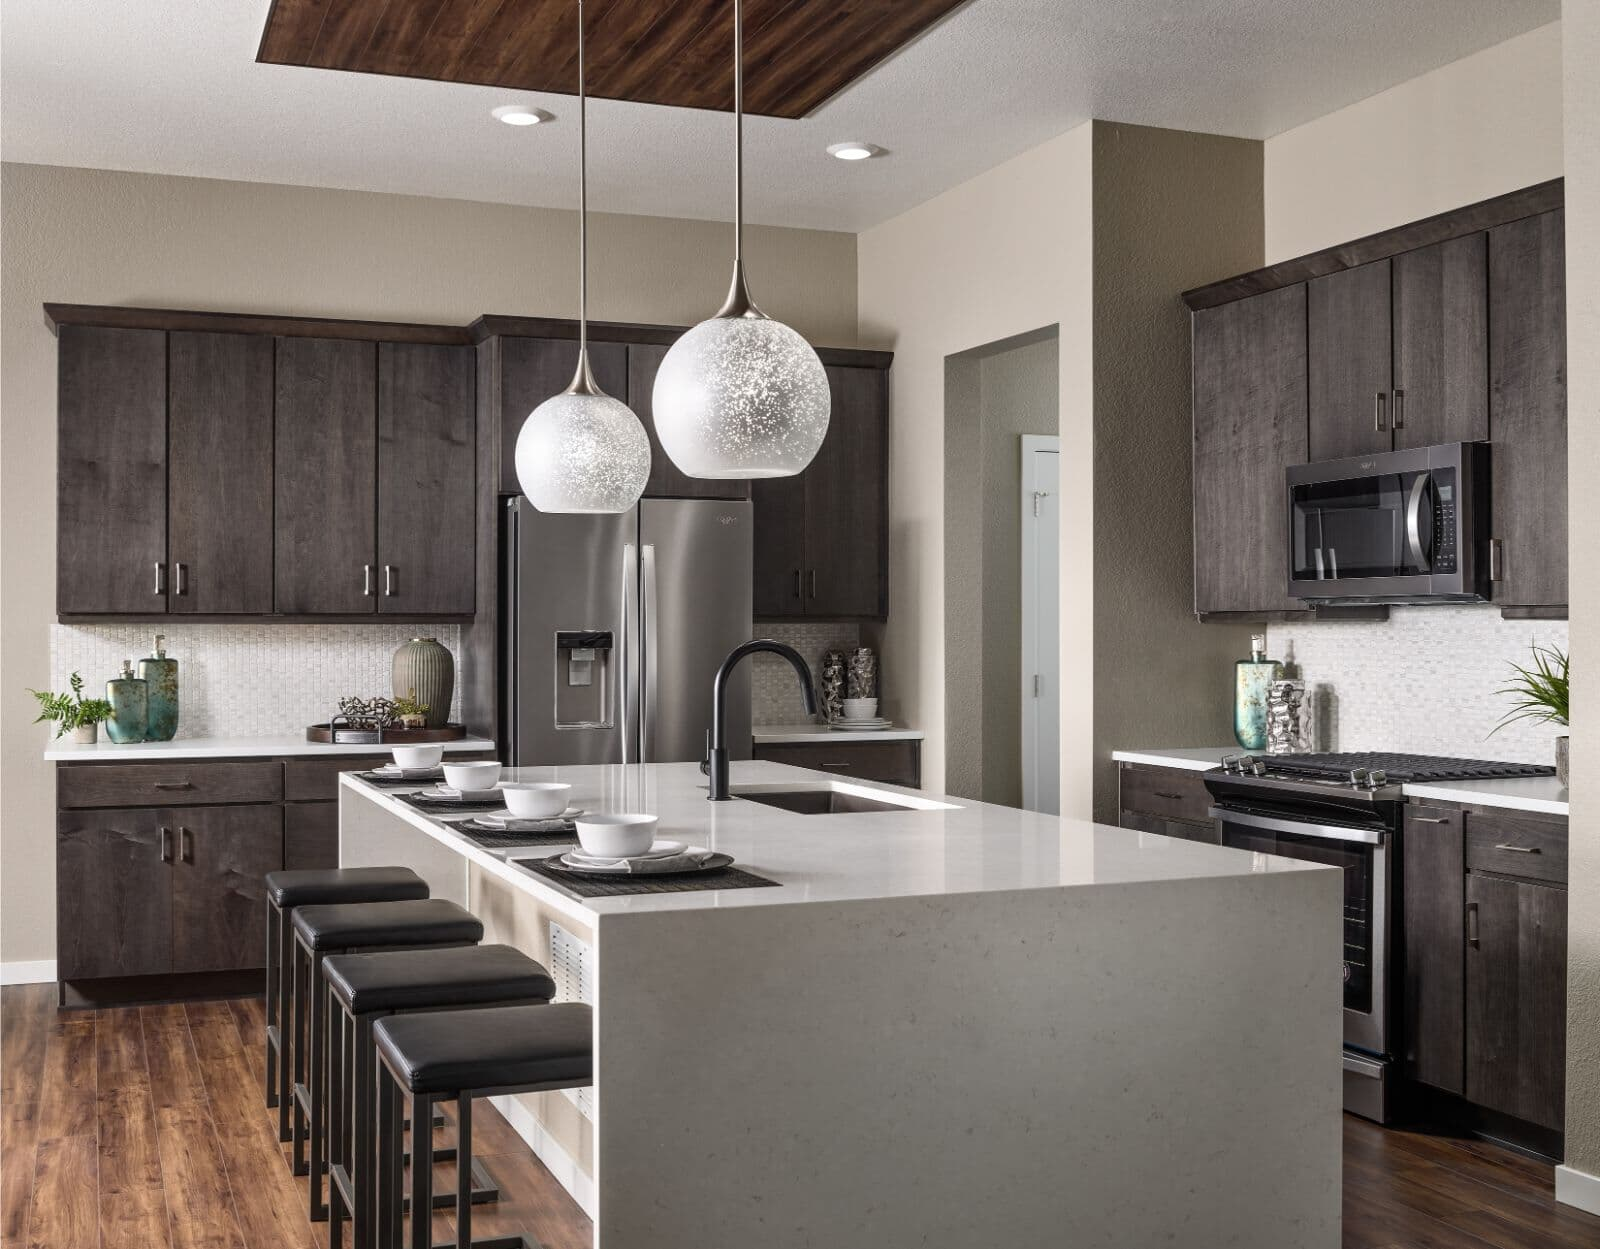 Ovation One Kitchen Brighton Crossings Denver Colorado